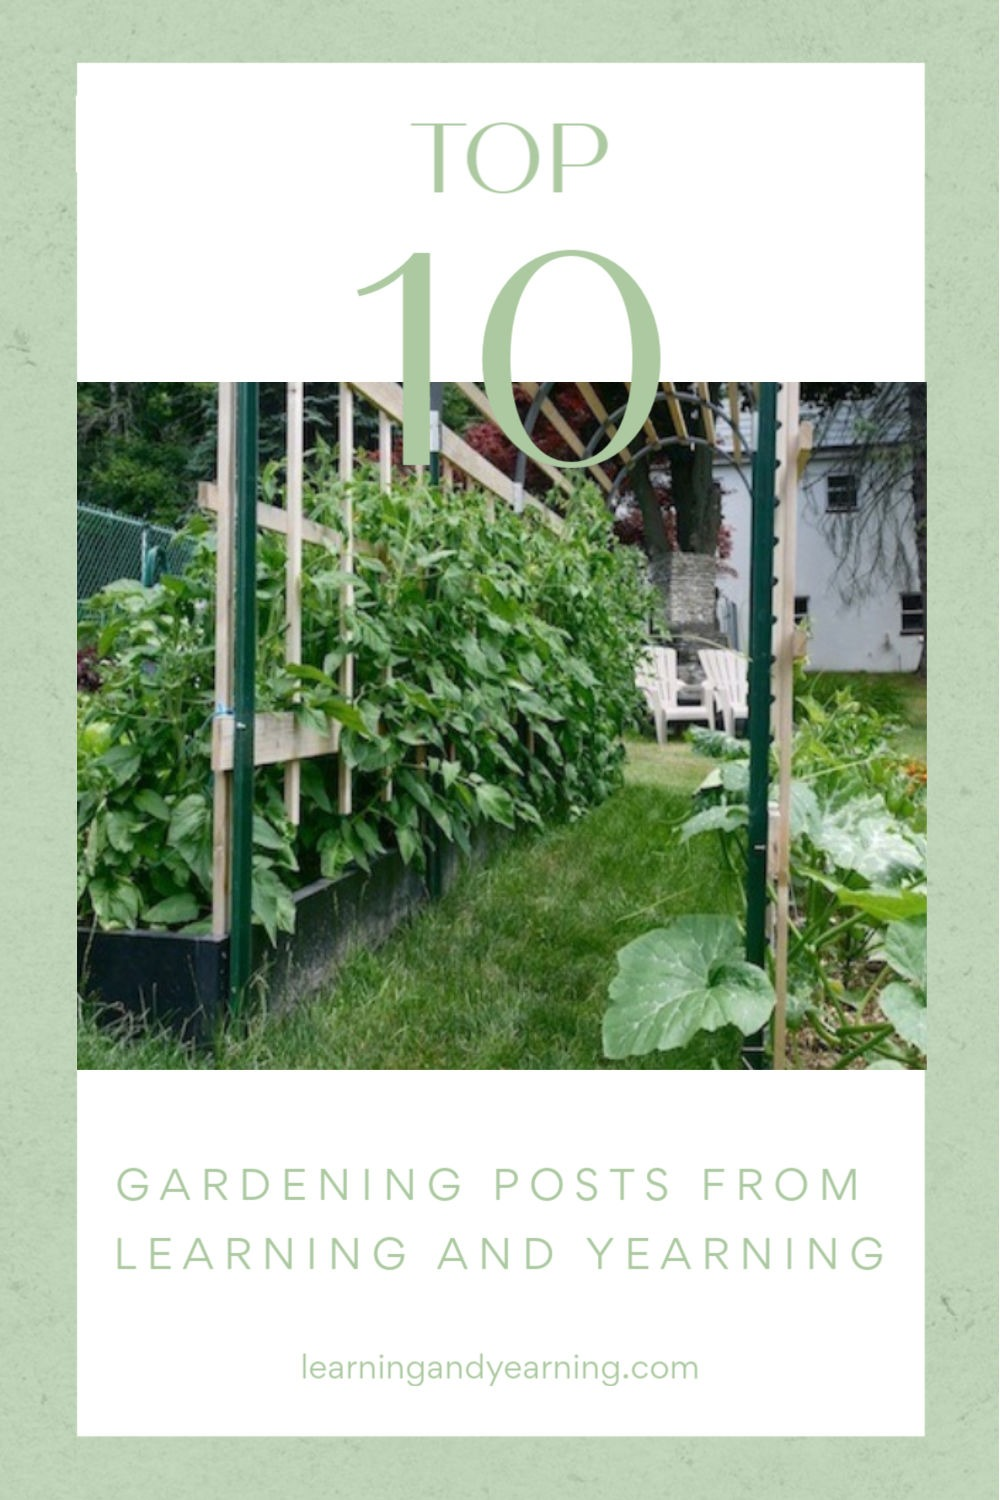 Top ten gardening posts.